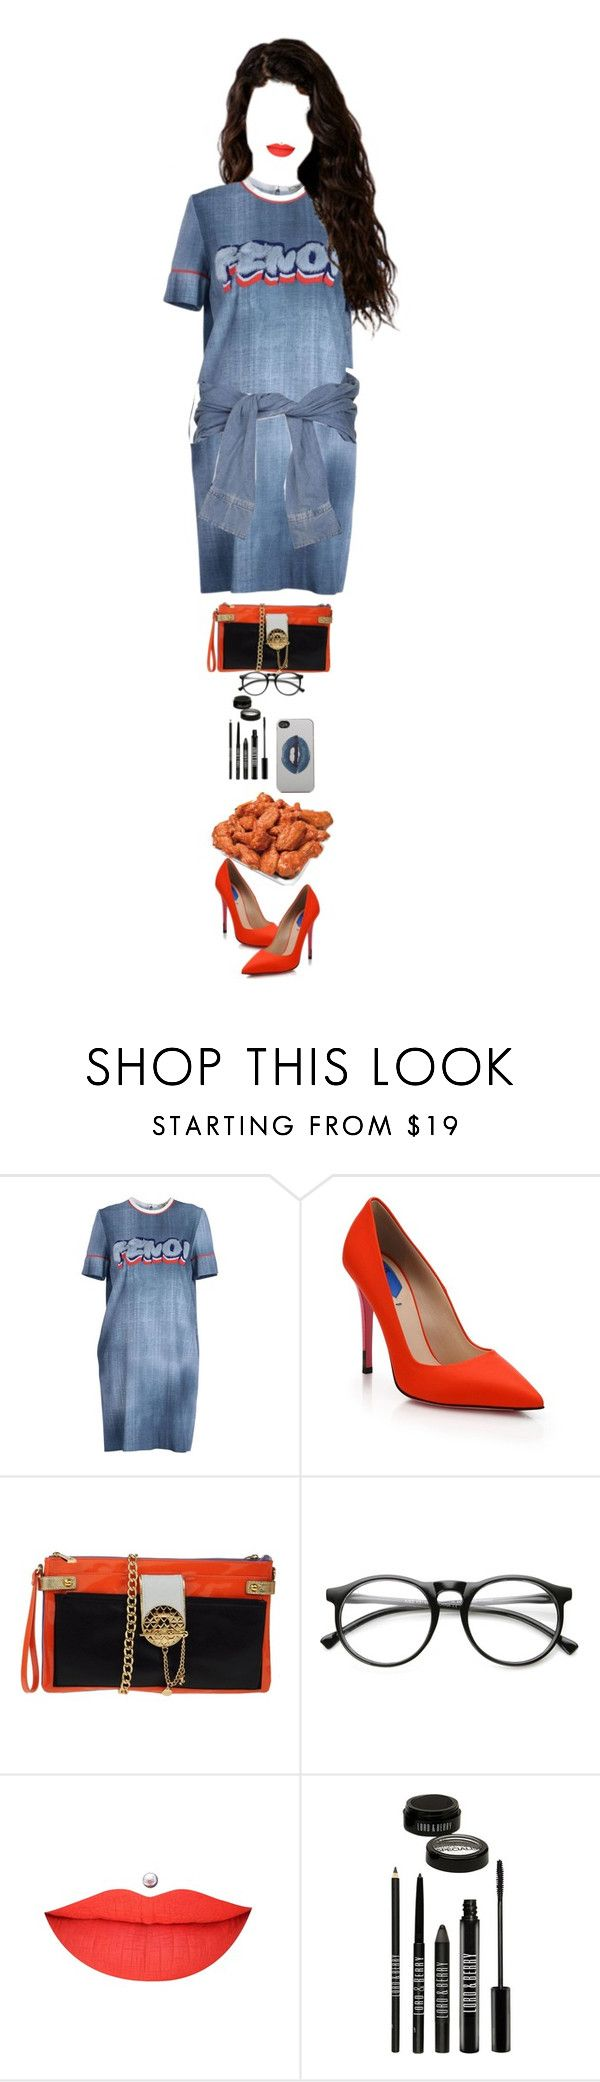 """""""at the Lakers VS Kings game at the Staples Center, Los Angeles"""" by luxury-kamar ❤ liked on Polyvore featuring Fendi, River Island, Just Cavalli, Lord & Berry, Zero Gravity and INC International Concepts"""